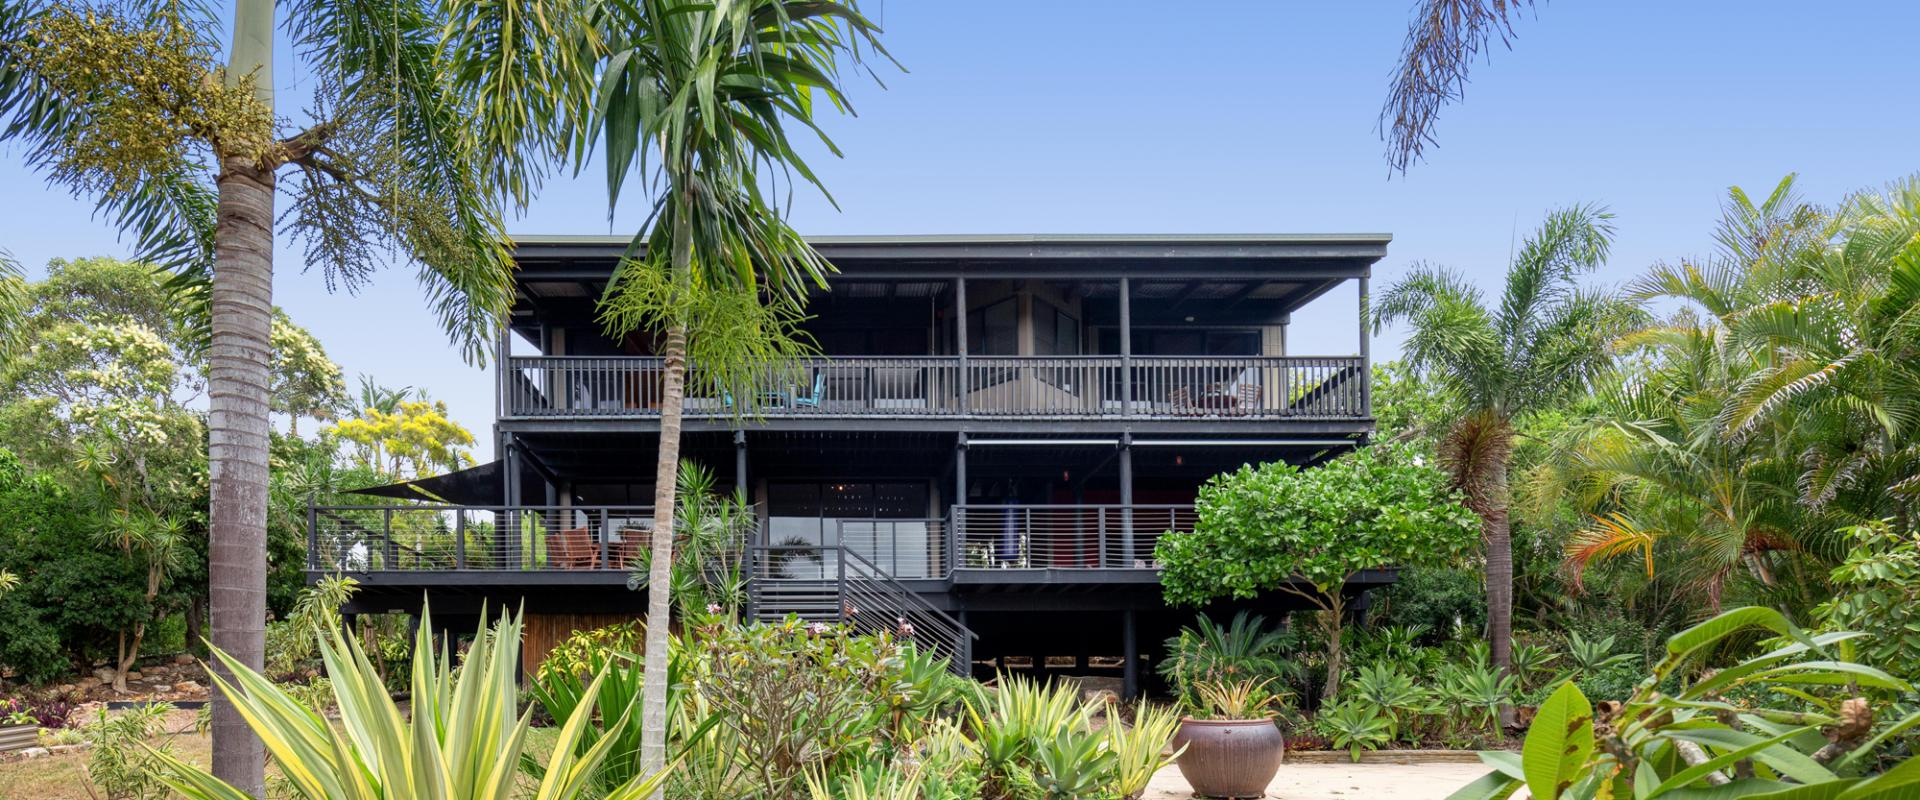 SITTING UP HIGH A TRULY MAGNIFICENT ELEVATED RESIDENCE WITH BREATHTAKING AND SPECTACULAR TREE TOP CANOPY VIEWS INC DISTANT SEA AND FRASER ISLAND VIEWS